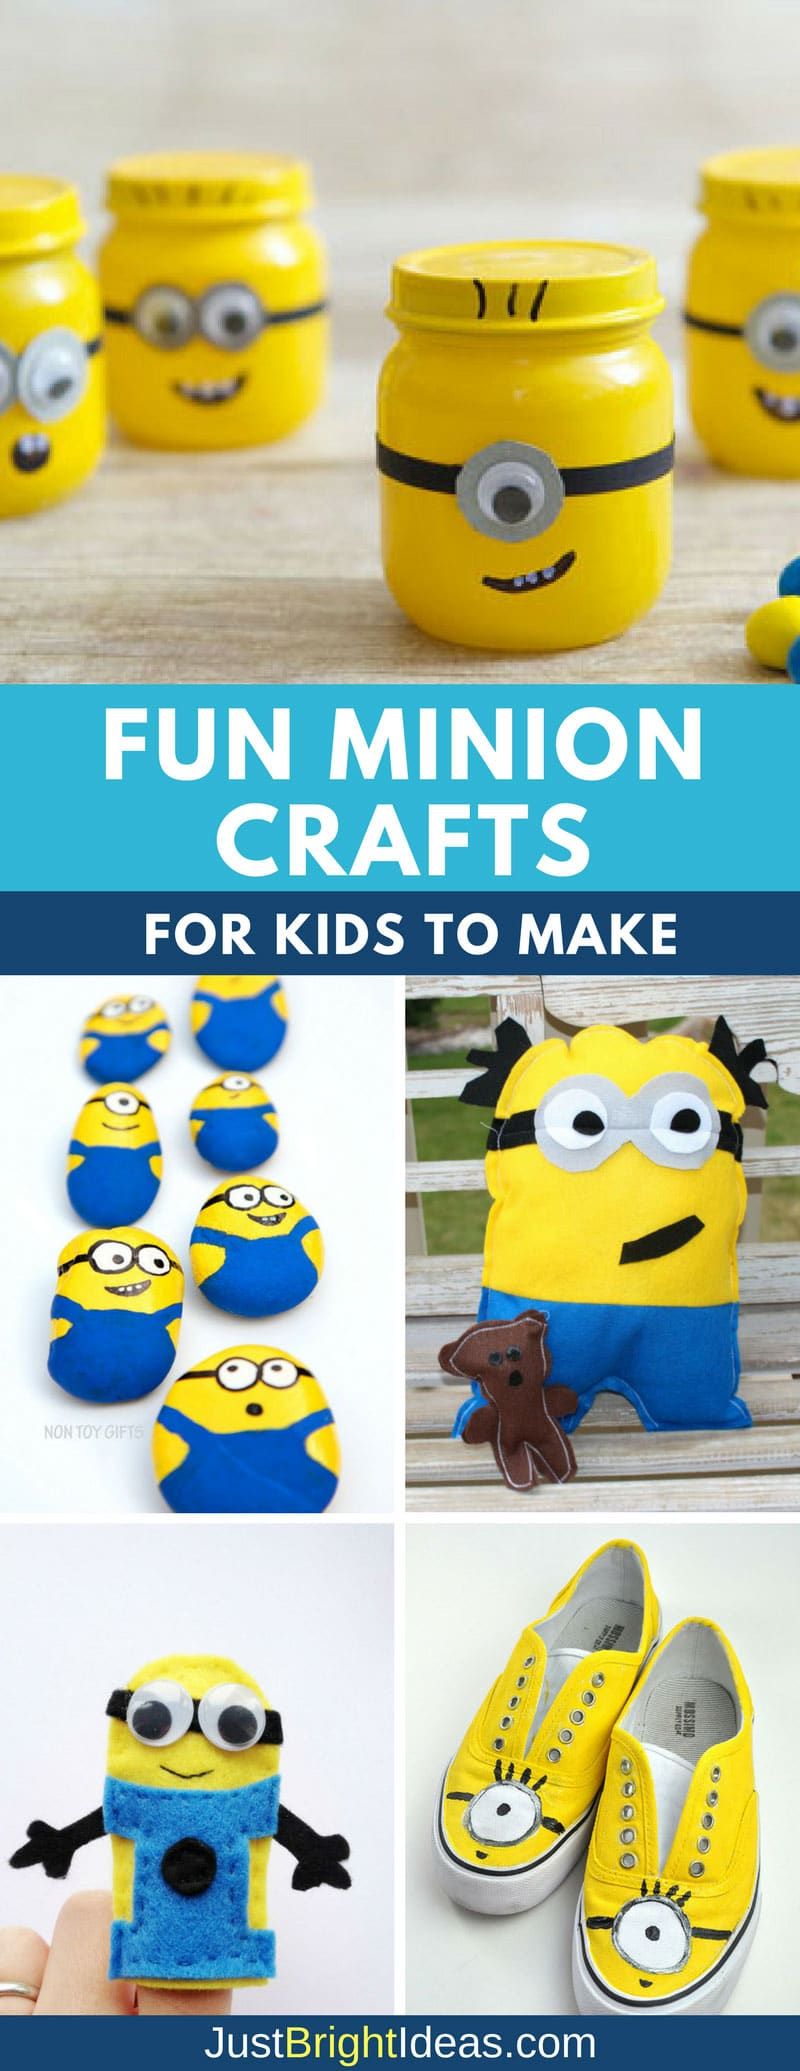 fun minion crafts for kids to make